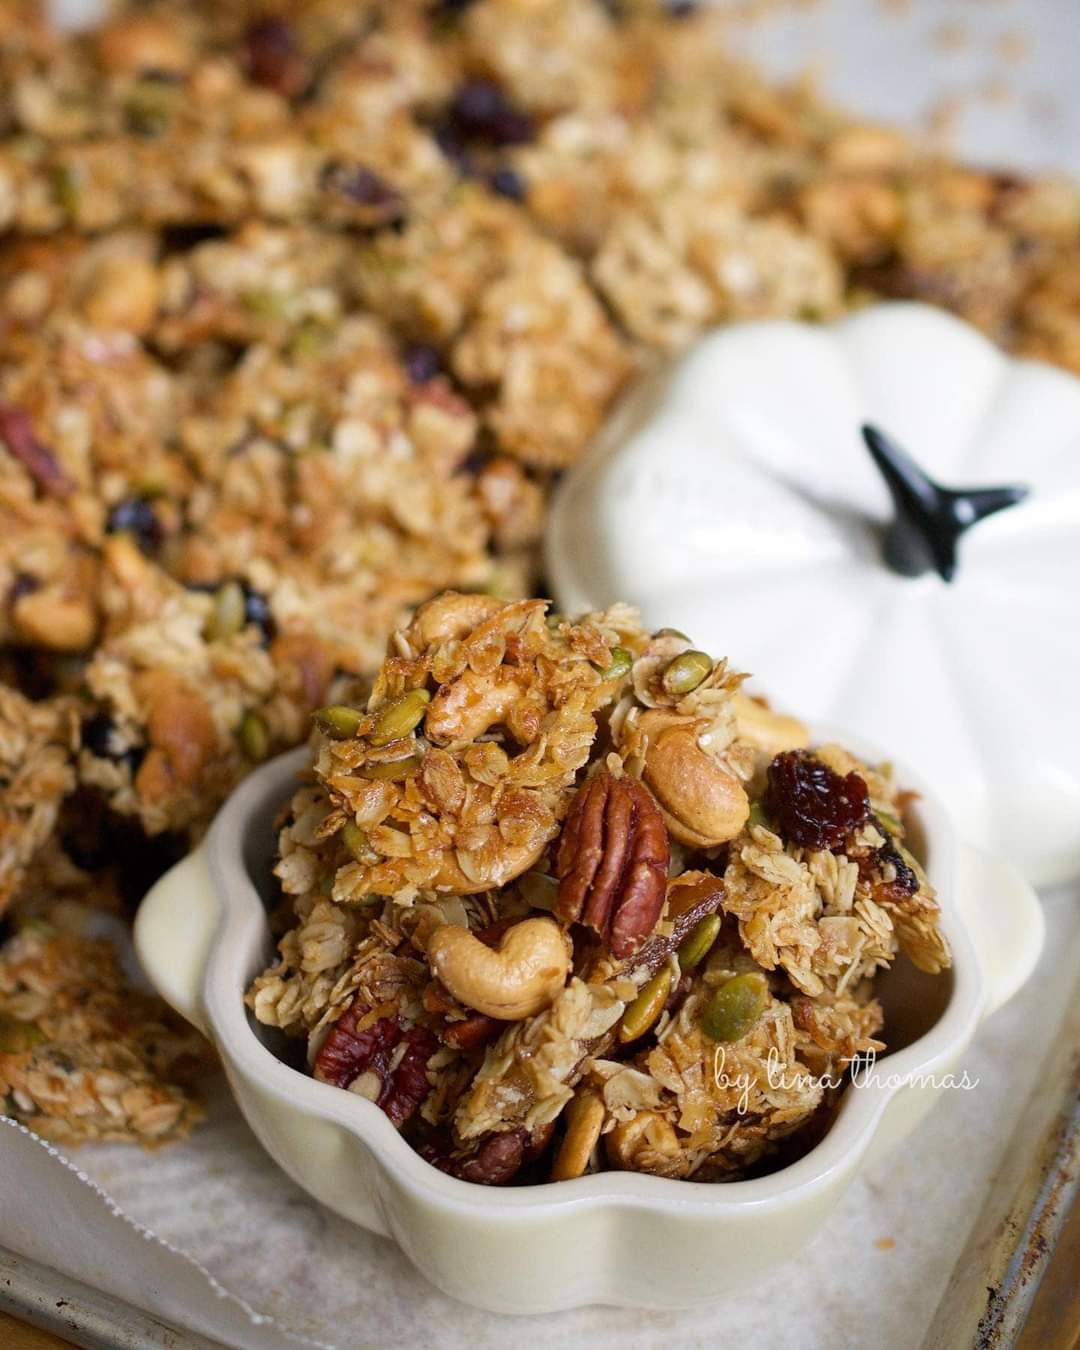 Homemade Granola By Lina Thomas